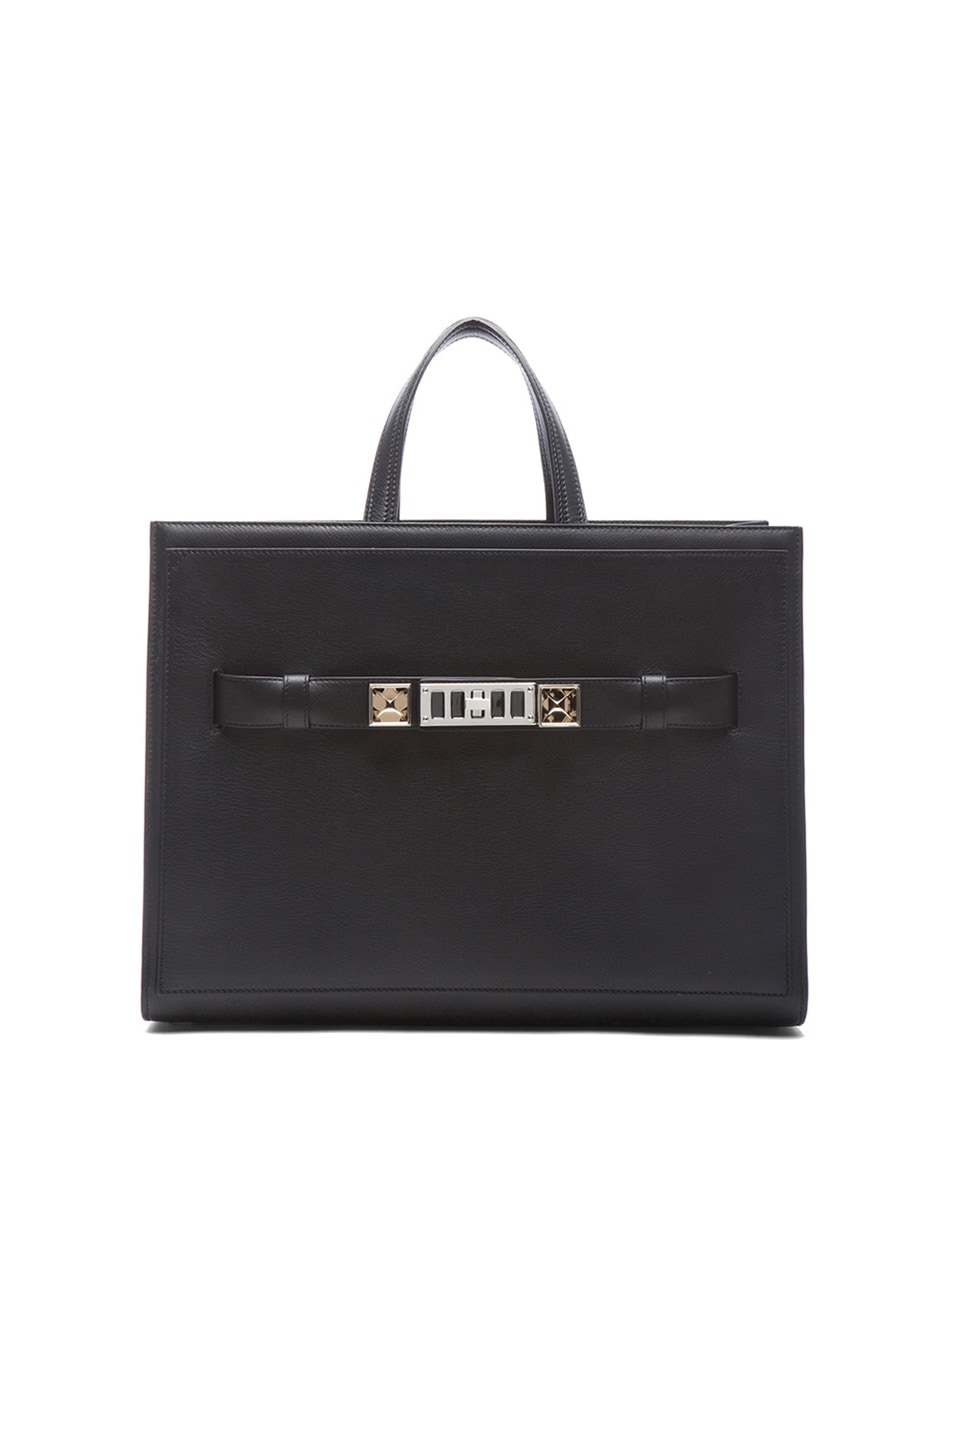 Image 1 of Proenza Schouler Large PS11 Tote in Black